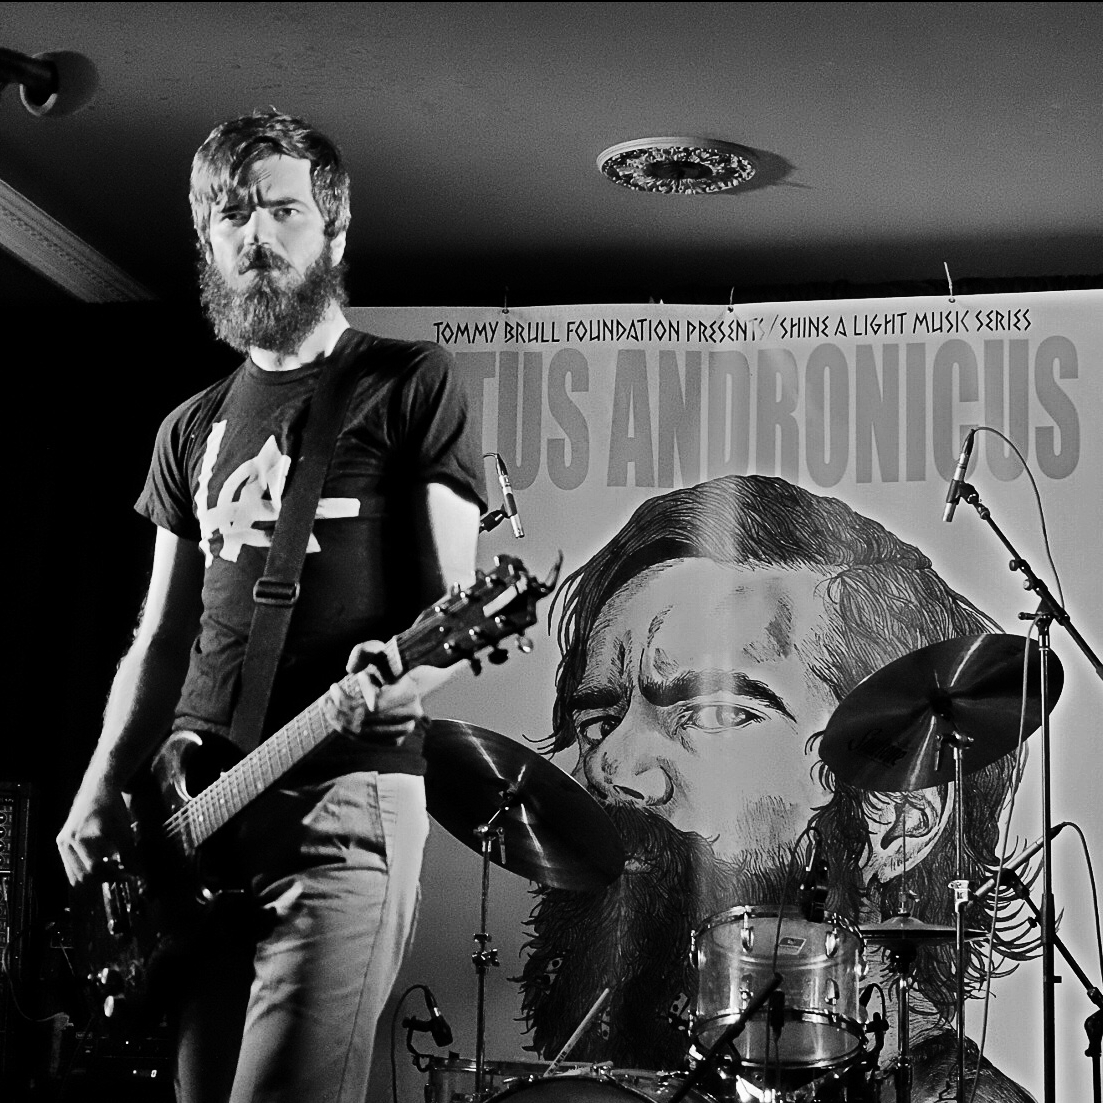 TITUS ANDRONICUS / HAPPINESS  10-6-16 Cannon's Blackthorn, Rockville Centre NY